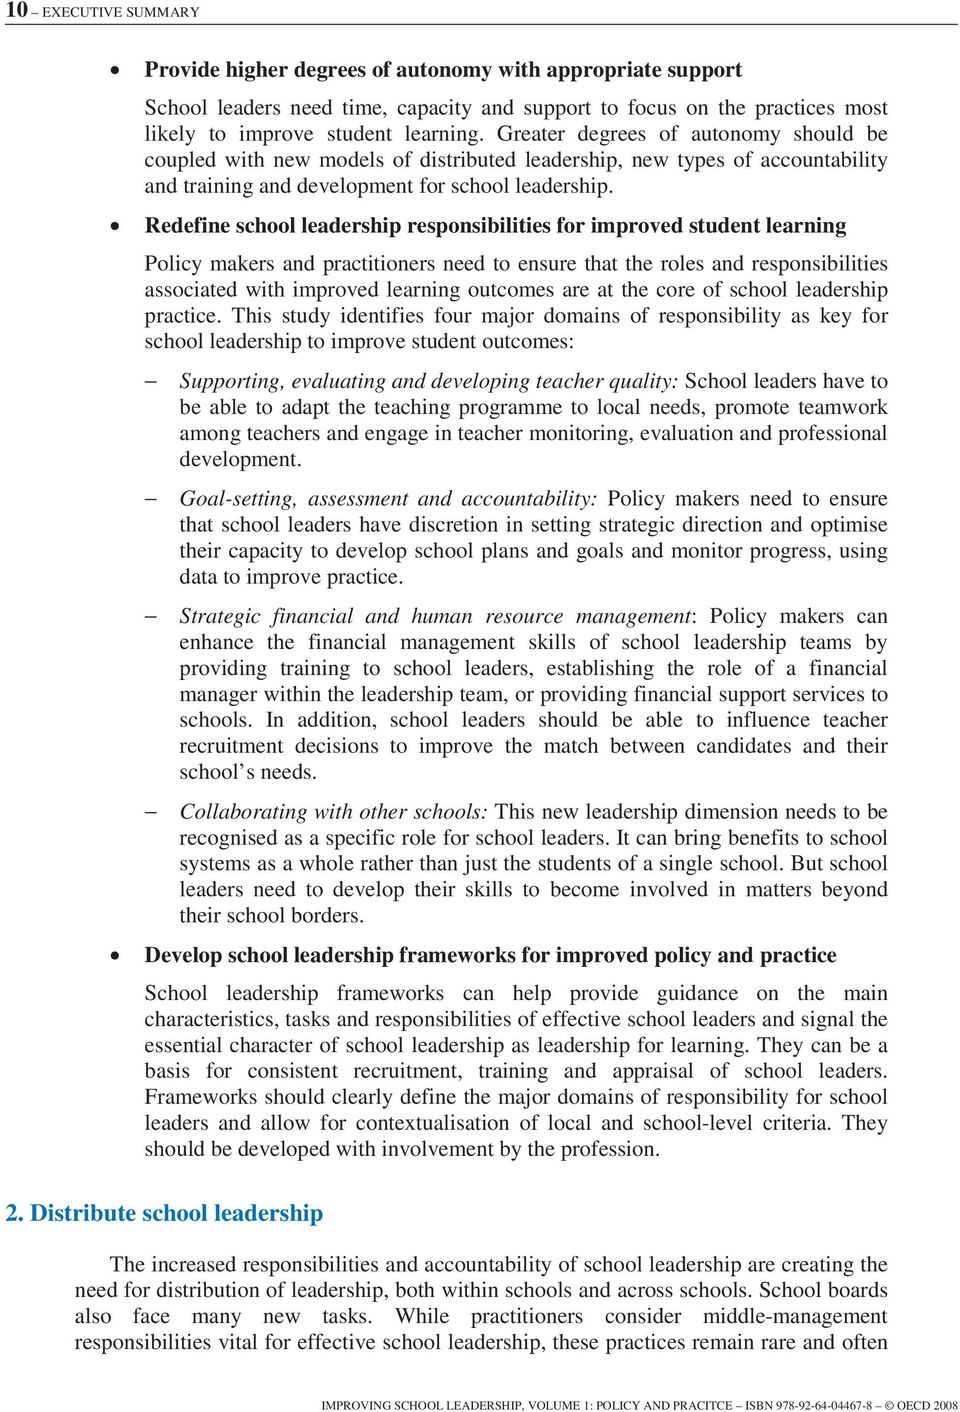 Redefine school leadership responsibilities for improved student learning Policy makers and practitioners need to ensure that the roles and responsibilities associated with improved learning outcomes